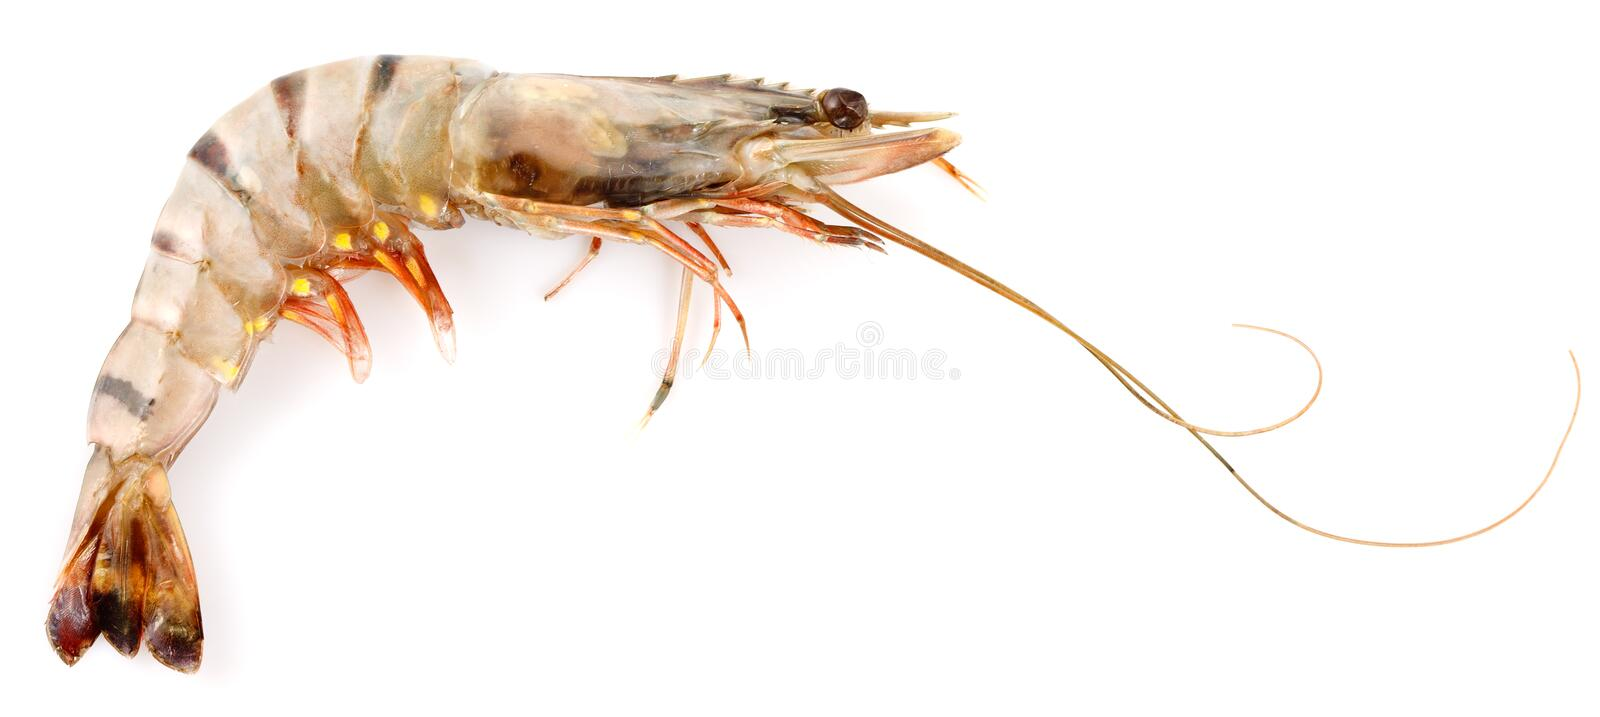 Download Black Tiger Shrimp stock photo. Image of food, shellfish - 23102460